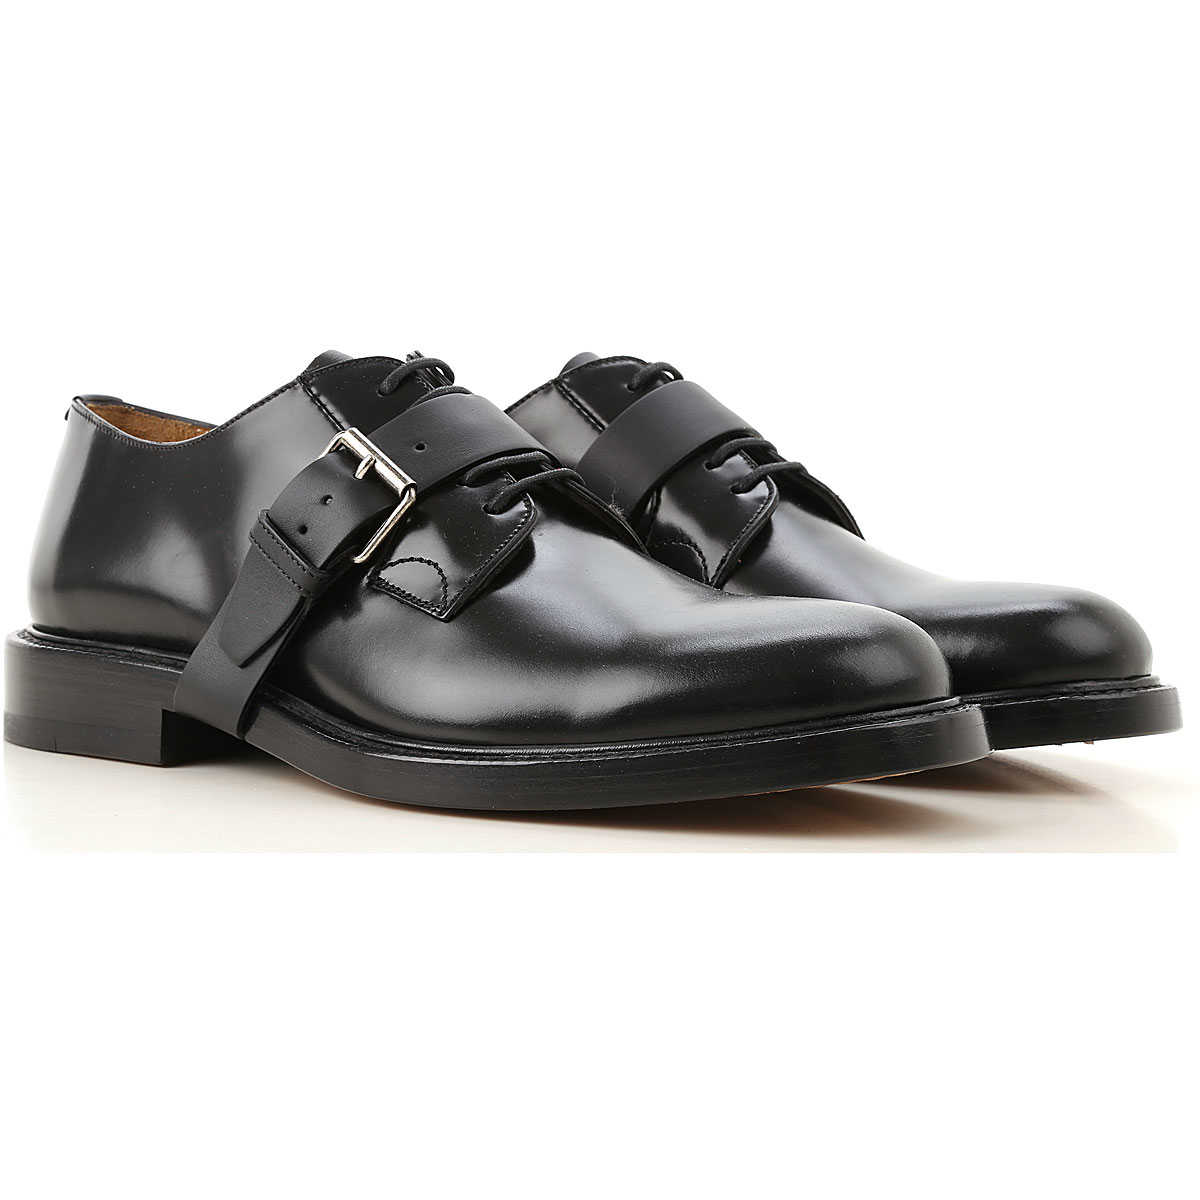 Valentino Garavani Lace Up Shoes for Men Oxfords Derbies and Brogues On Sale USA - GOOFASH